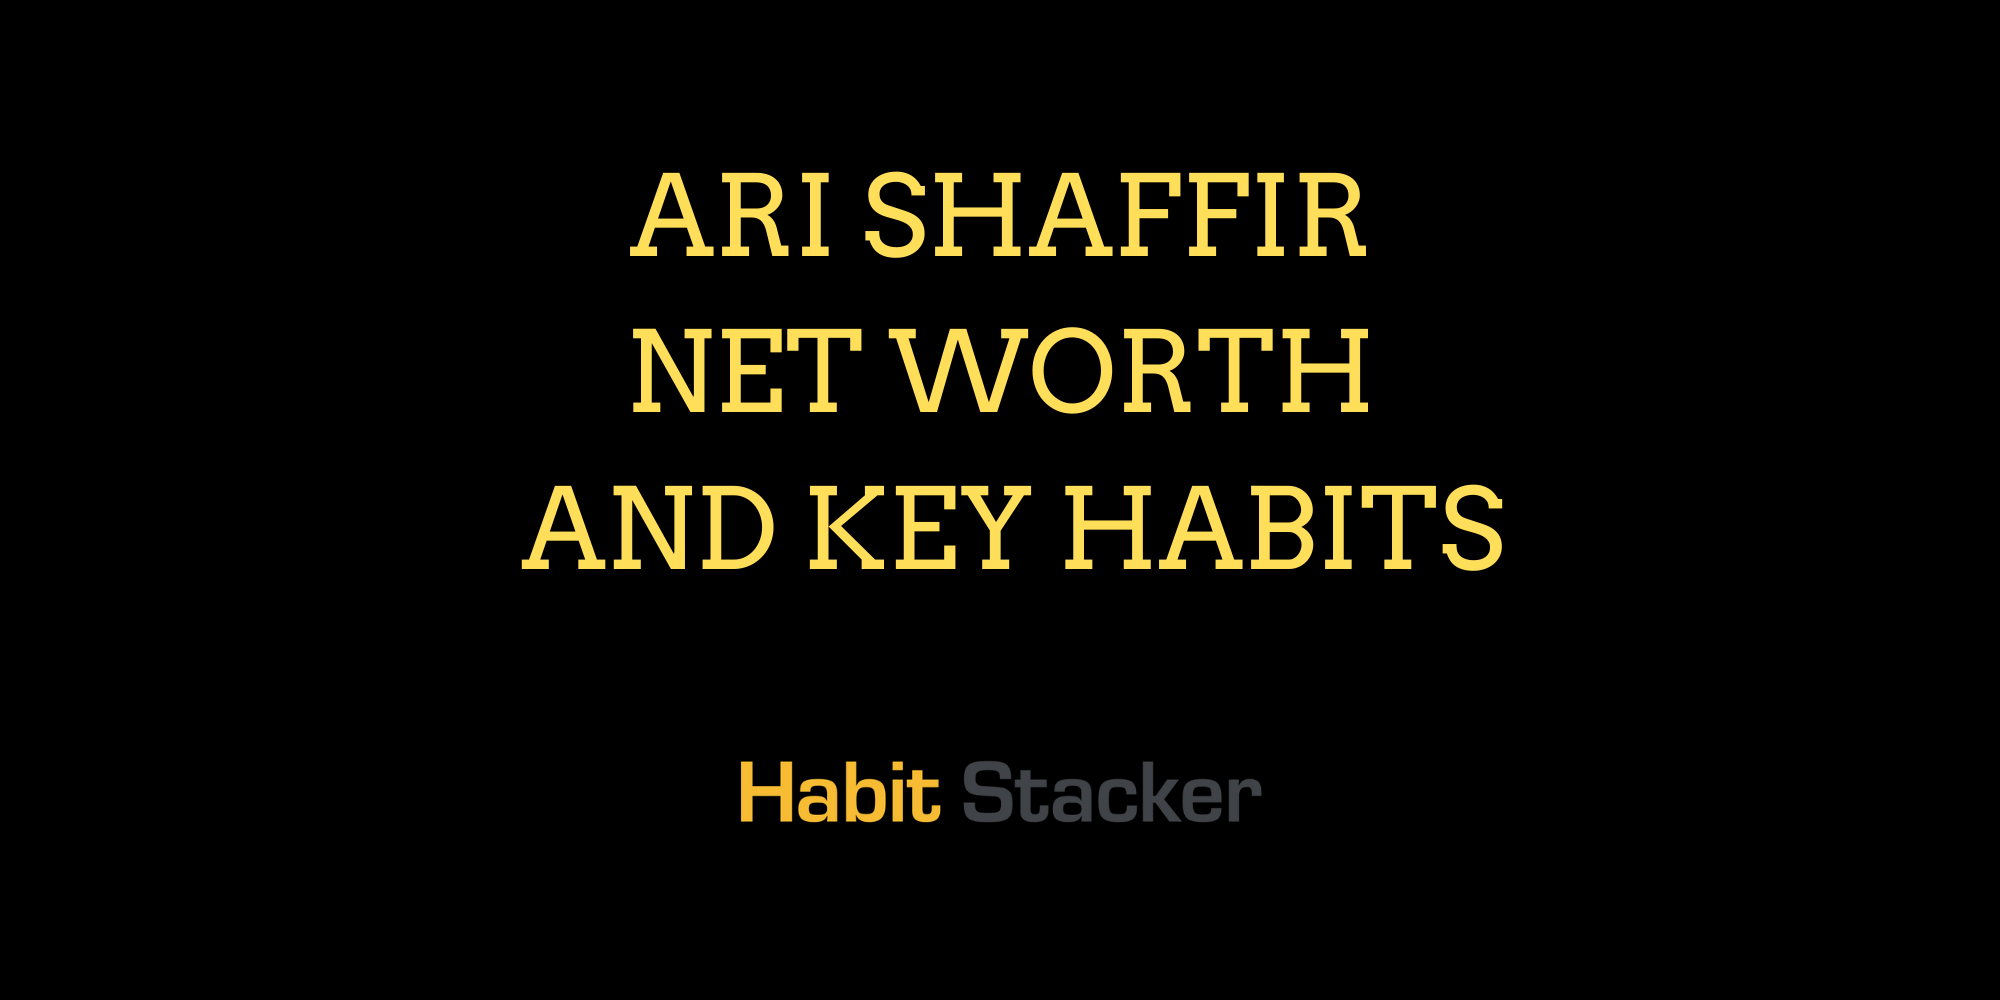 Ari Shaffir Net Worth and Key Habits